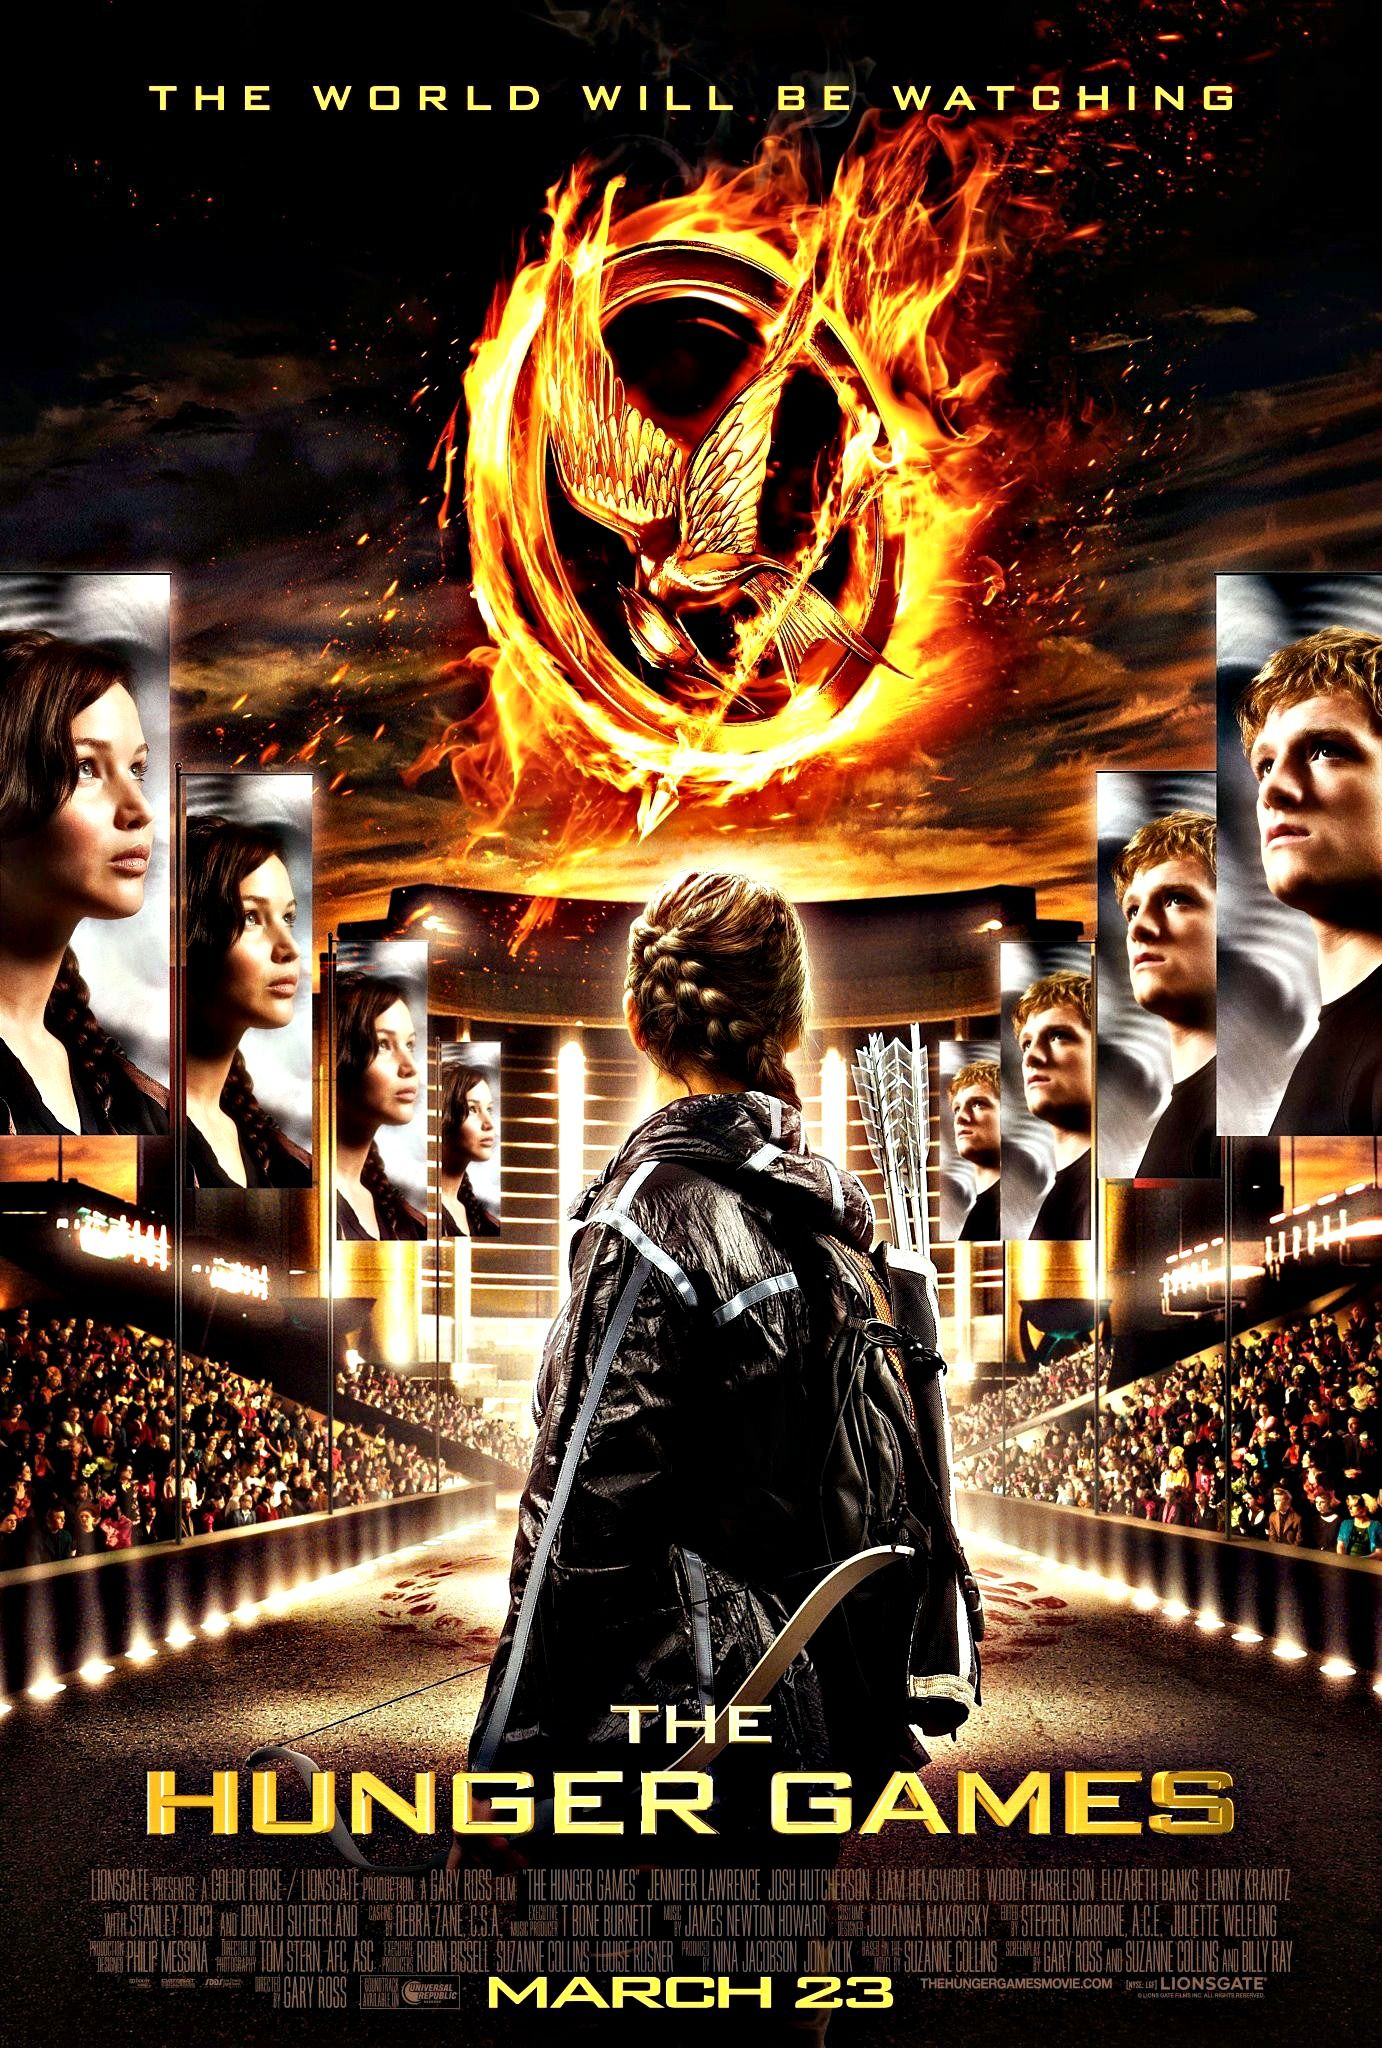 The Hunger Games Hunger Games Movies Hunger Games Poster Hunger Games